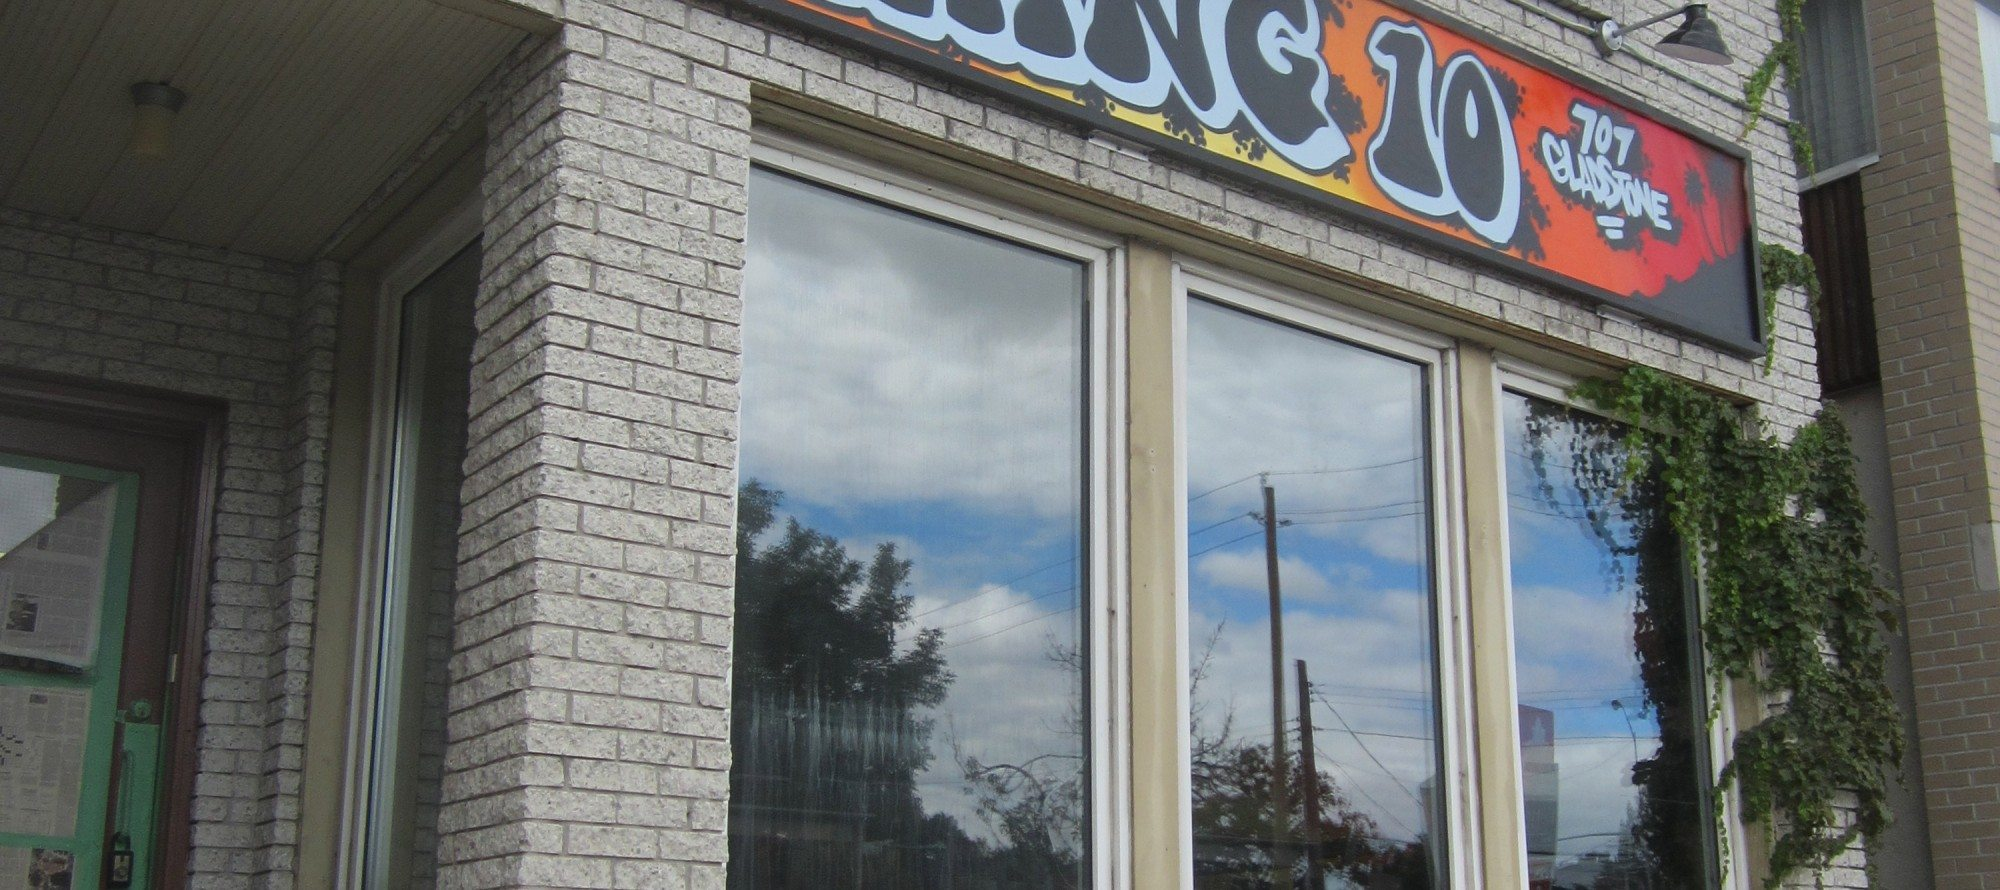 OPENING: TacoLot sets up sister shop on Gladstone Avenue as HANG 10, Cool California Cuisine